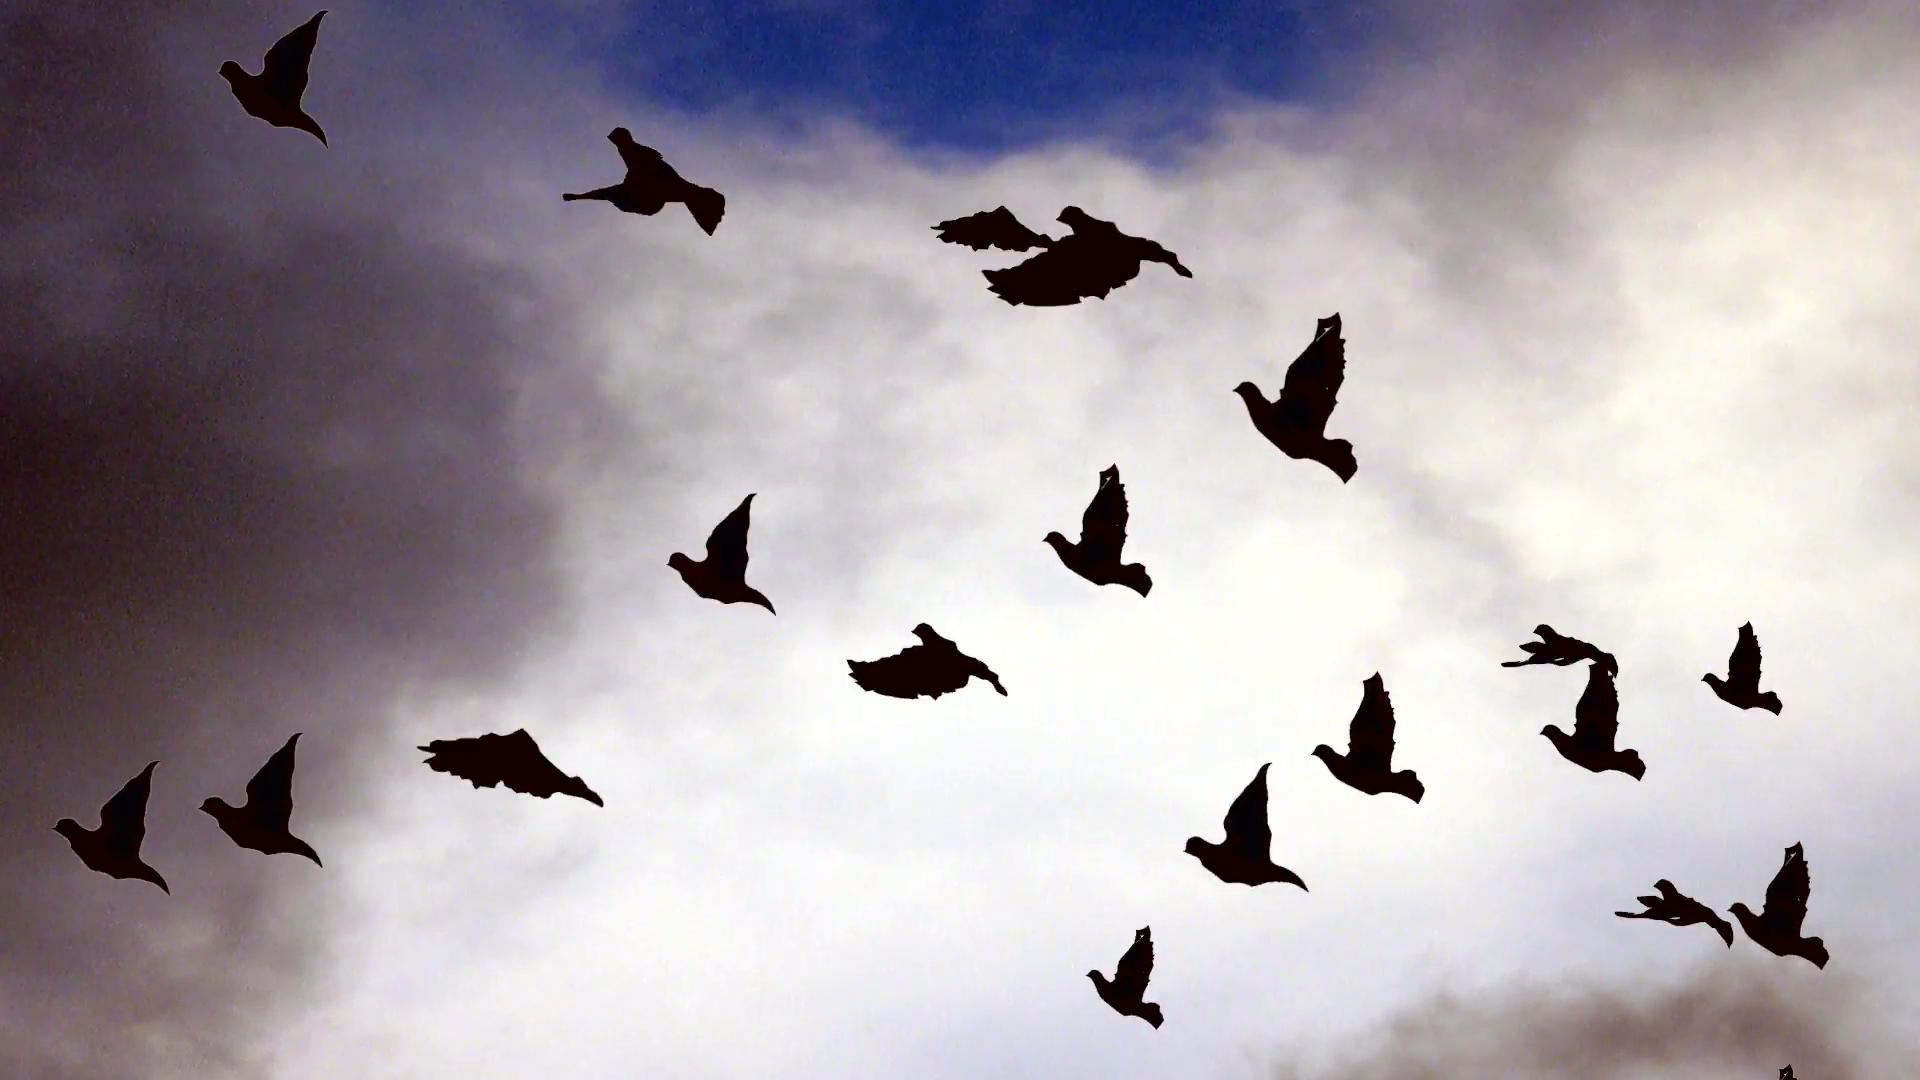 Flying birds against cloudy sky Motion Background - Videoblocks